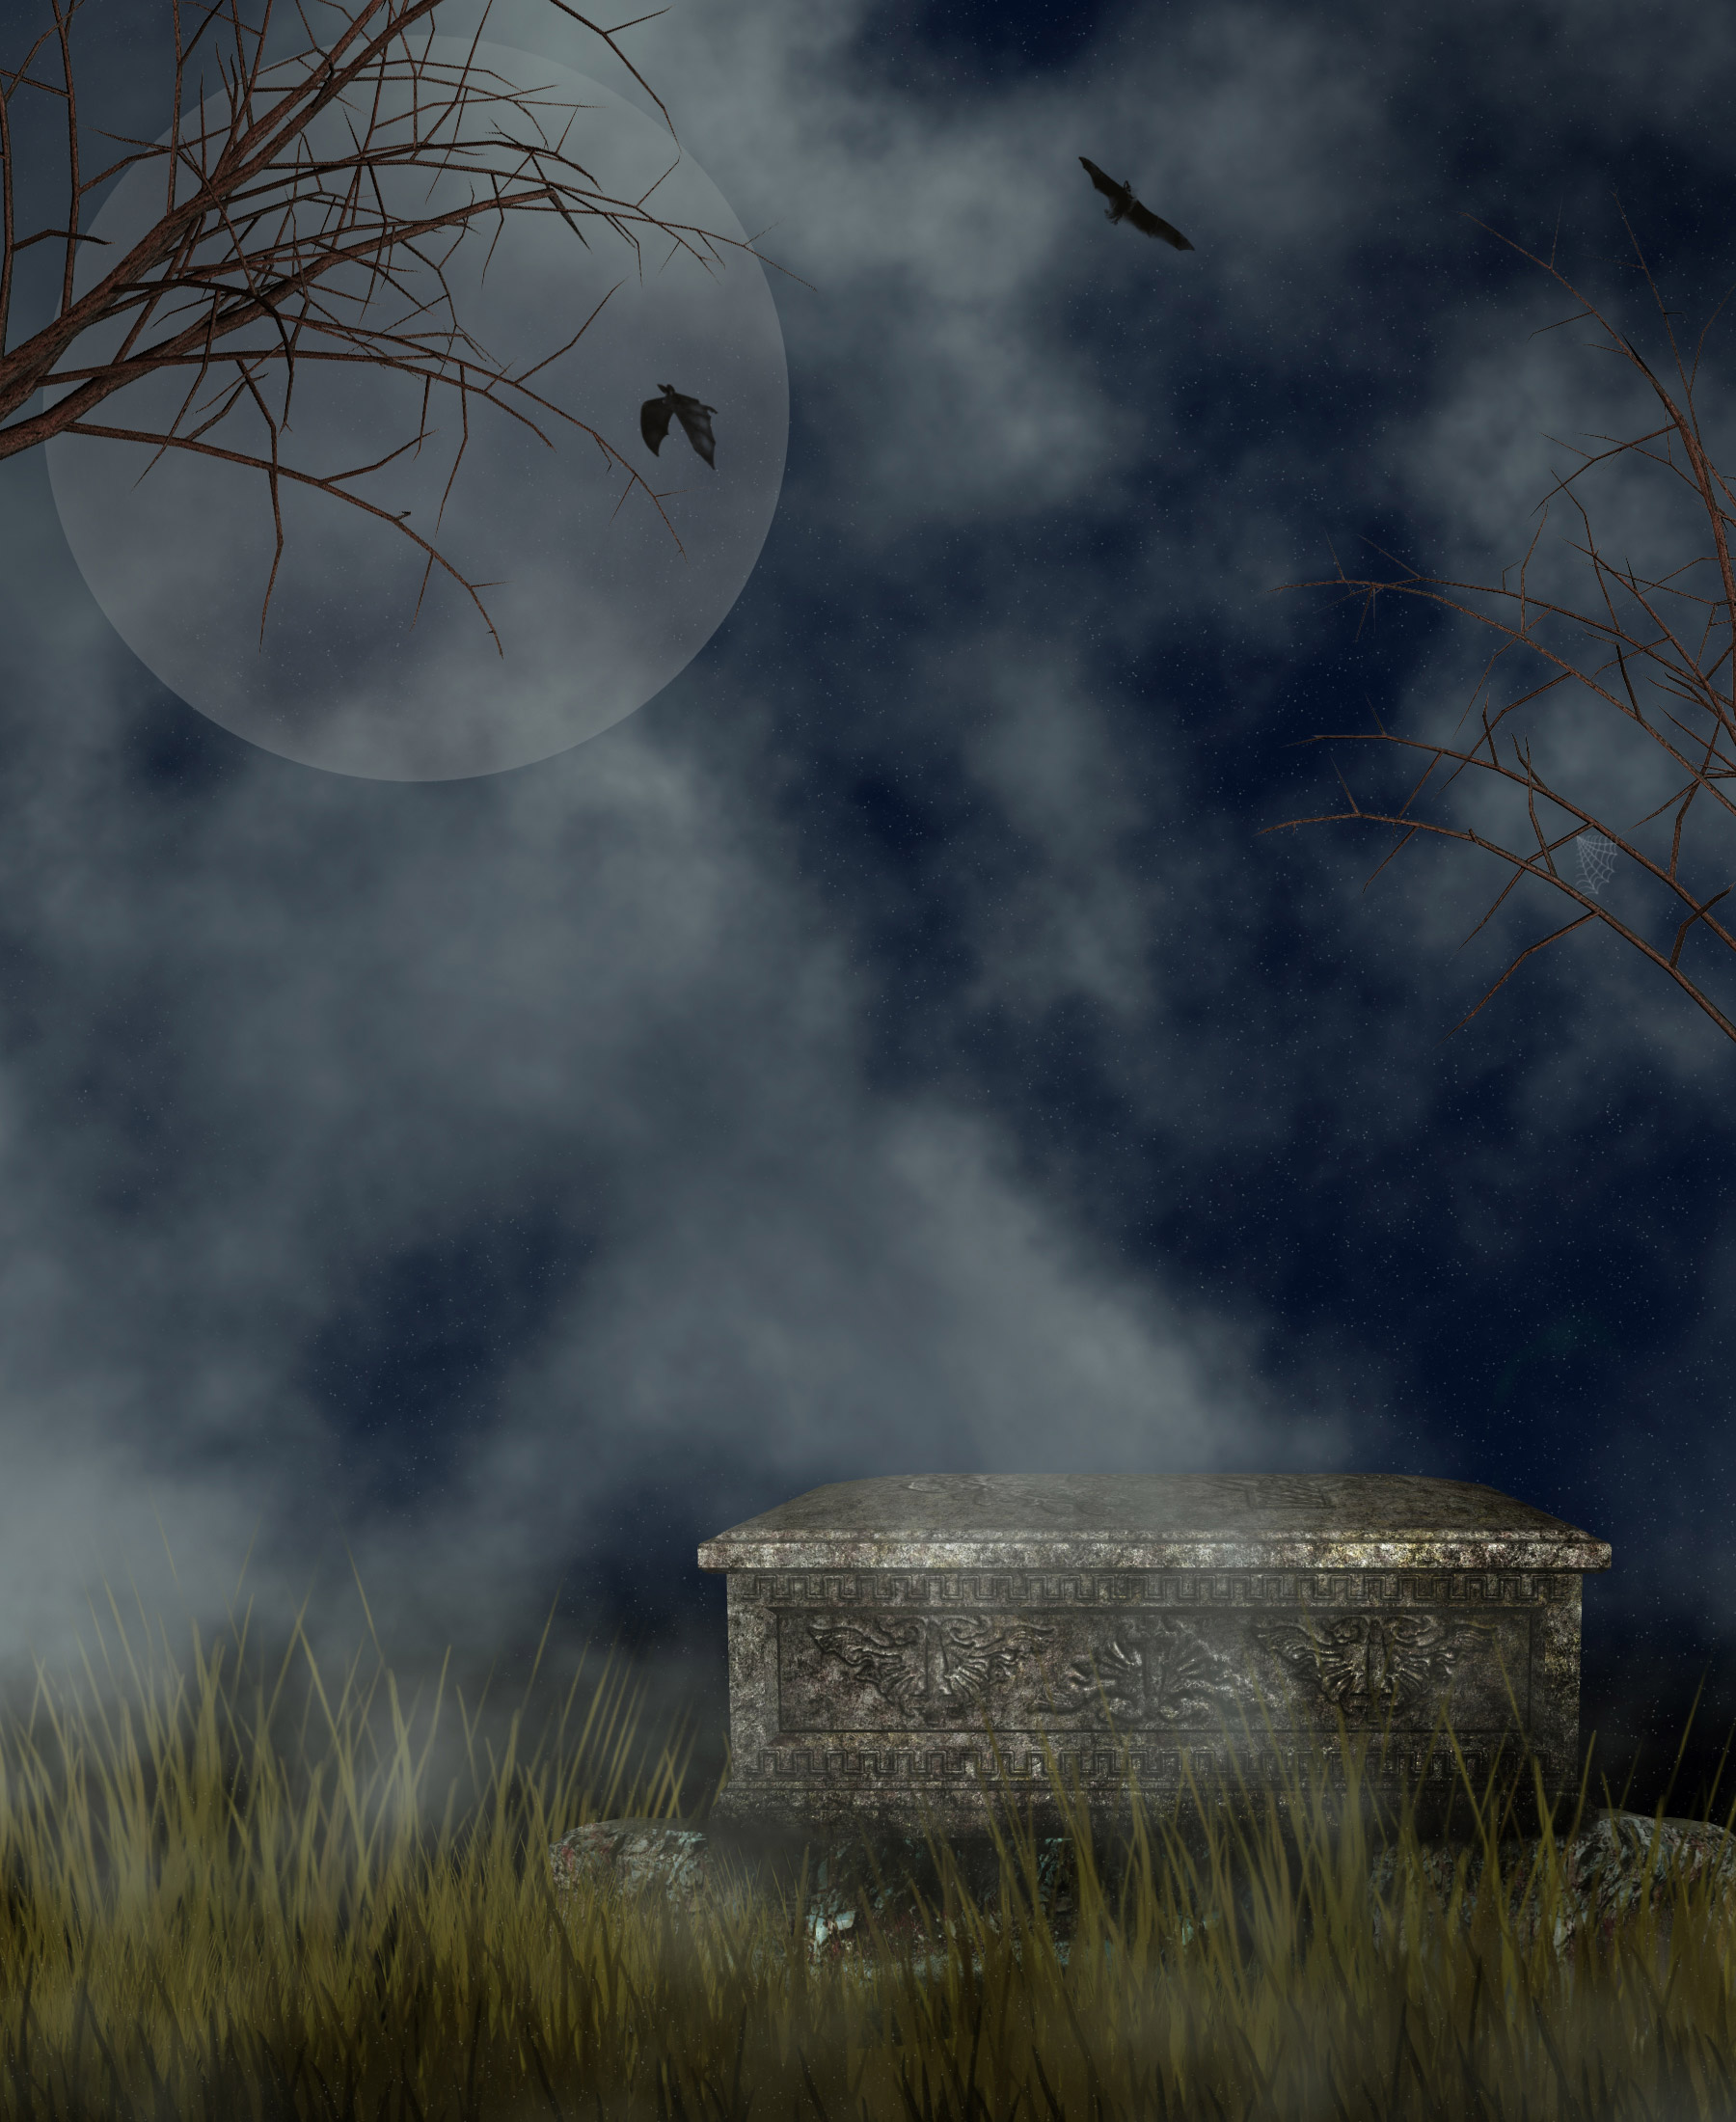 free halloween 2013 backgrounds wallpapers - Halloween Background Images Free